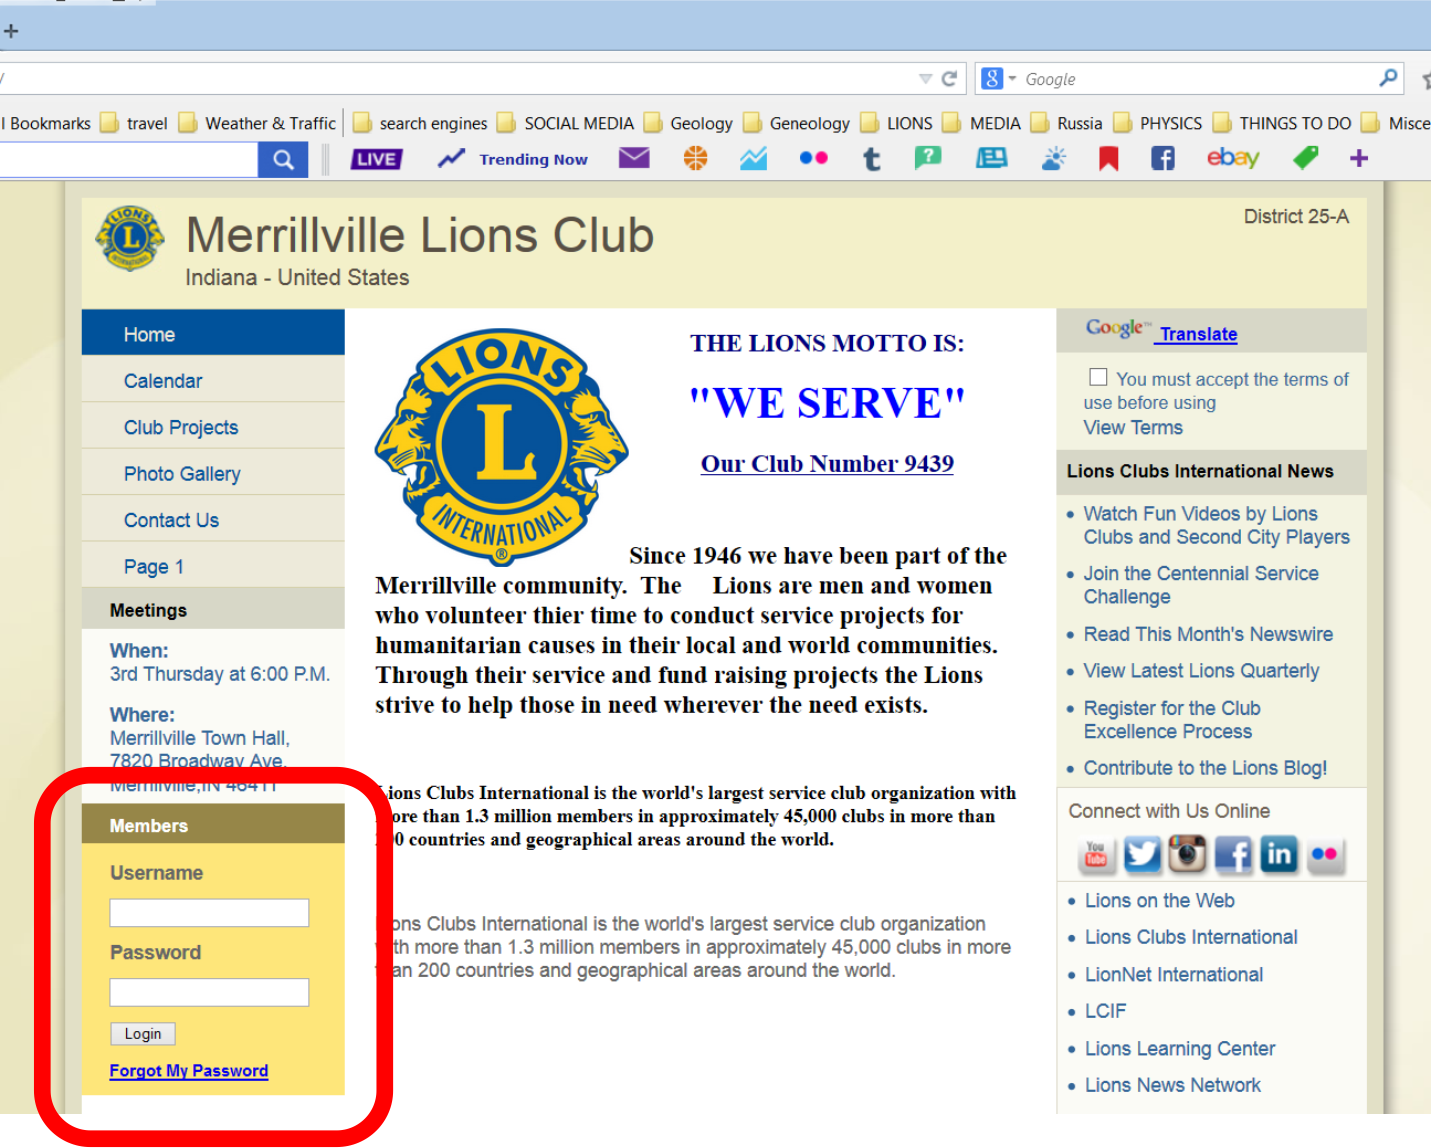 Merrillville Lions webpage - Members area outlined in Red